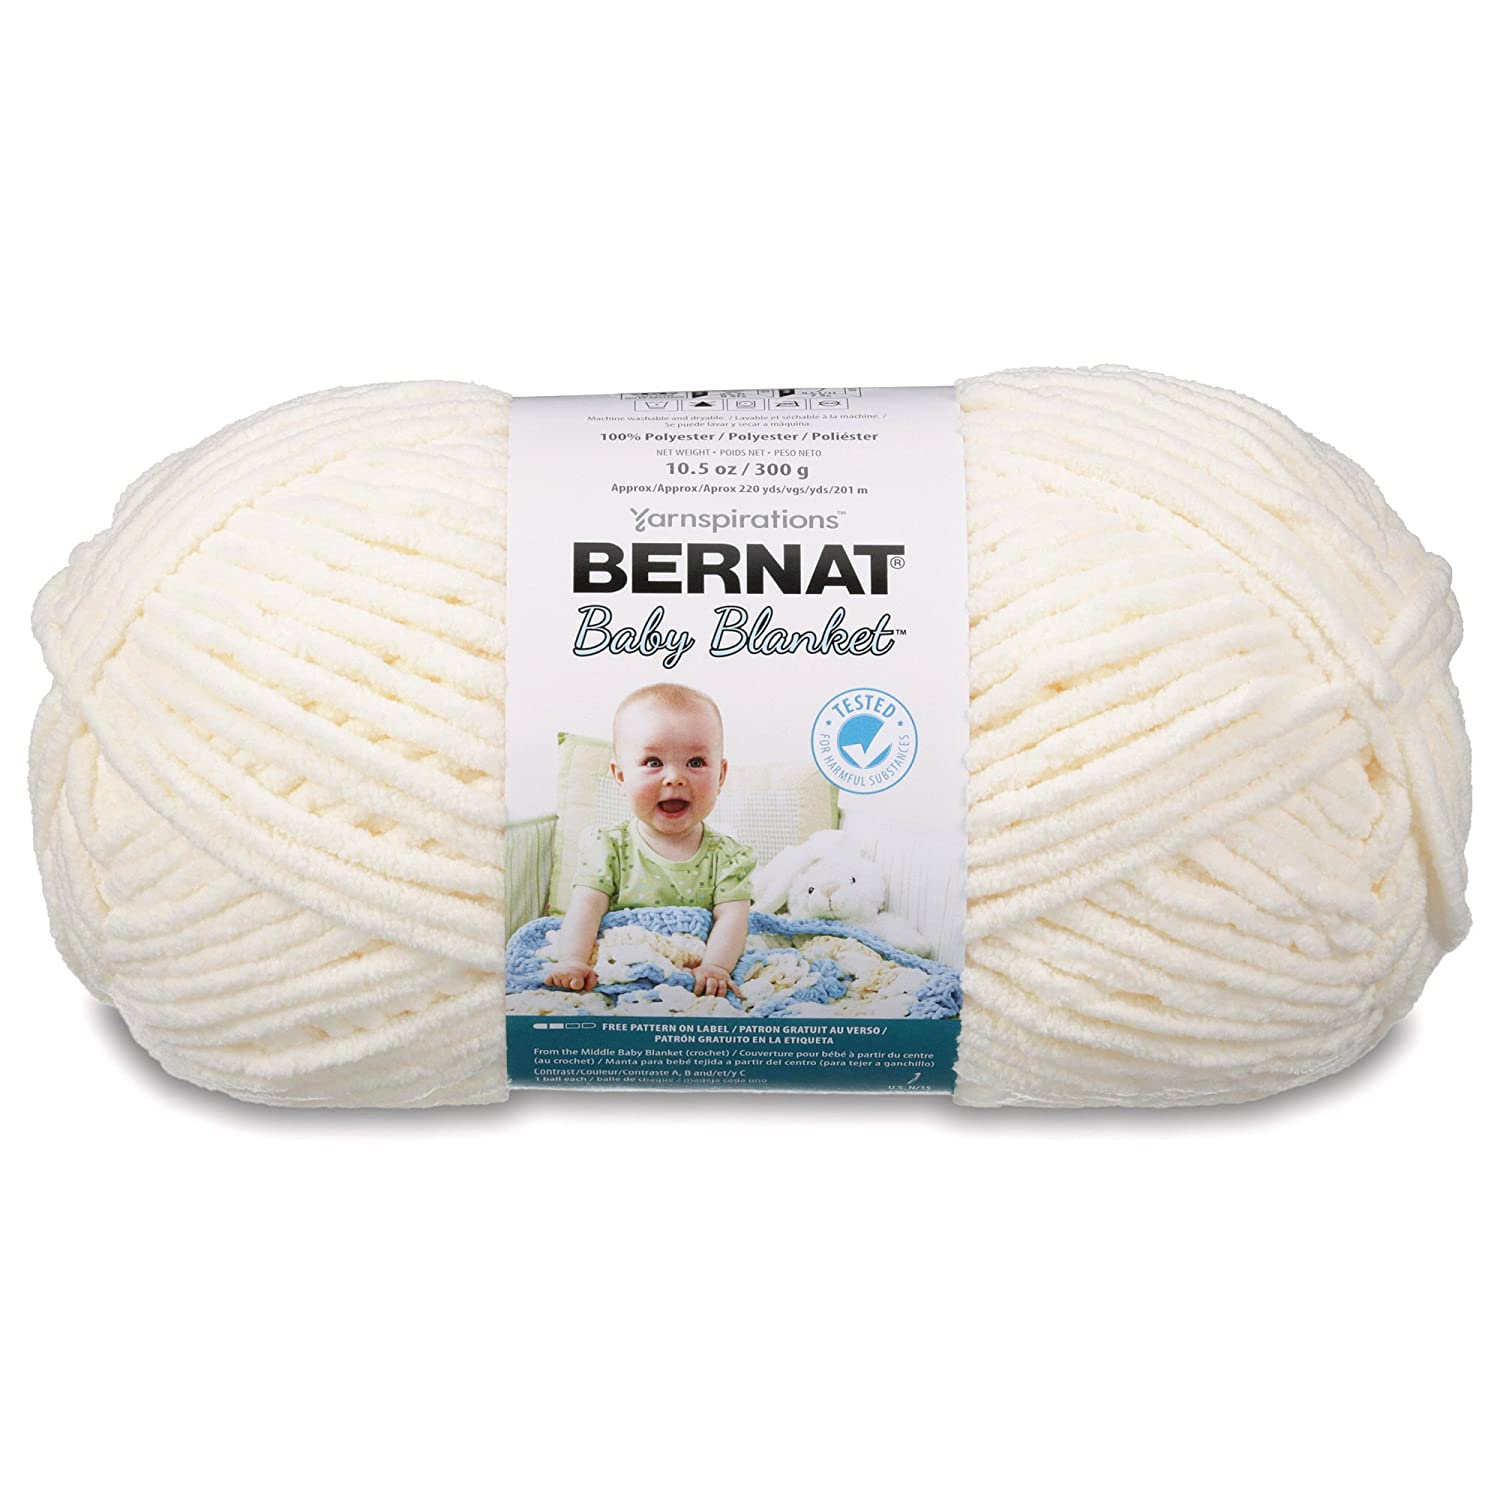 Bernat Baby Blanket Yarn - (6) Super Bulky Gauge - 10.5 oz - Vanilla - Single Ball Machine Wash & Dry Spinrite 16110404008